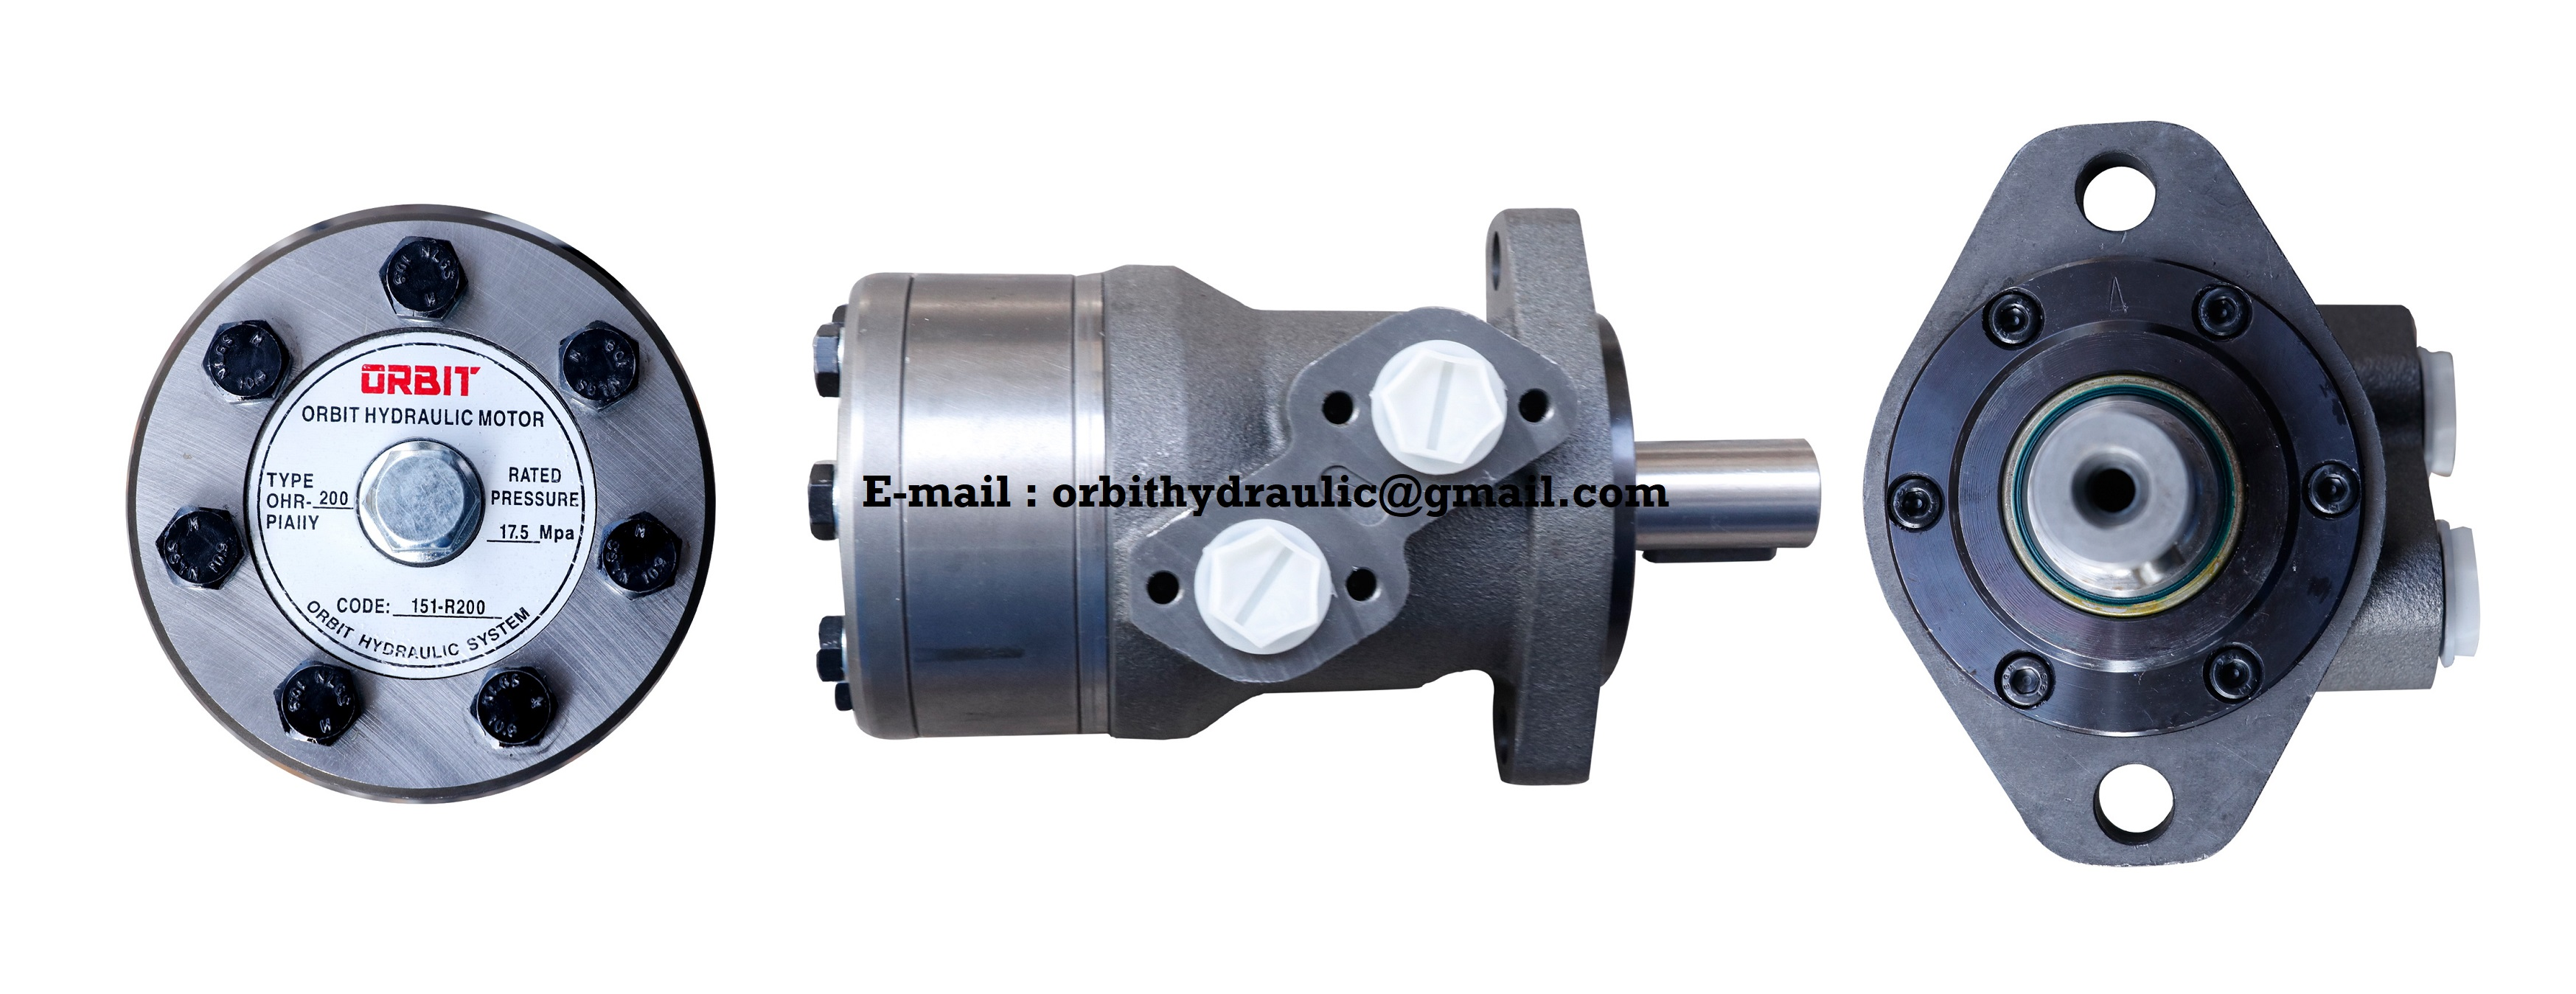 ORBIT OHR of OHR50, OHR80, OHR100, OHR125, OHR160, OHR200, OHR250, OHR315, OHR375 ORBIT Hydraulic Motor in India